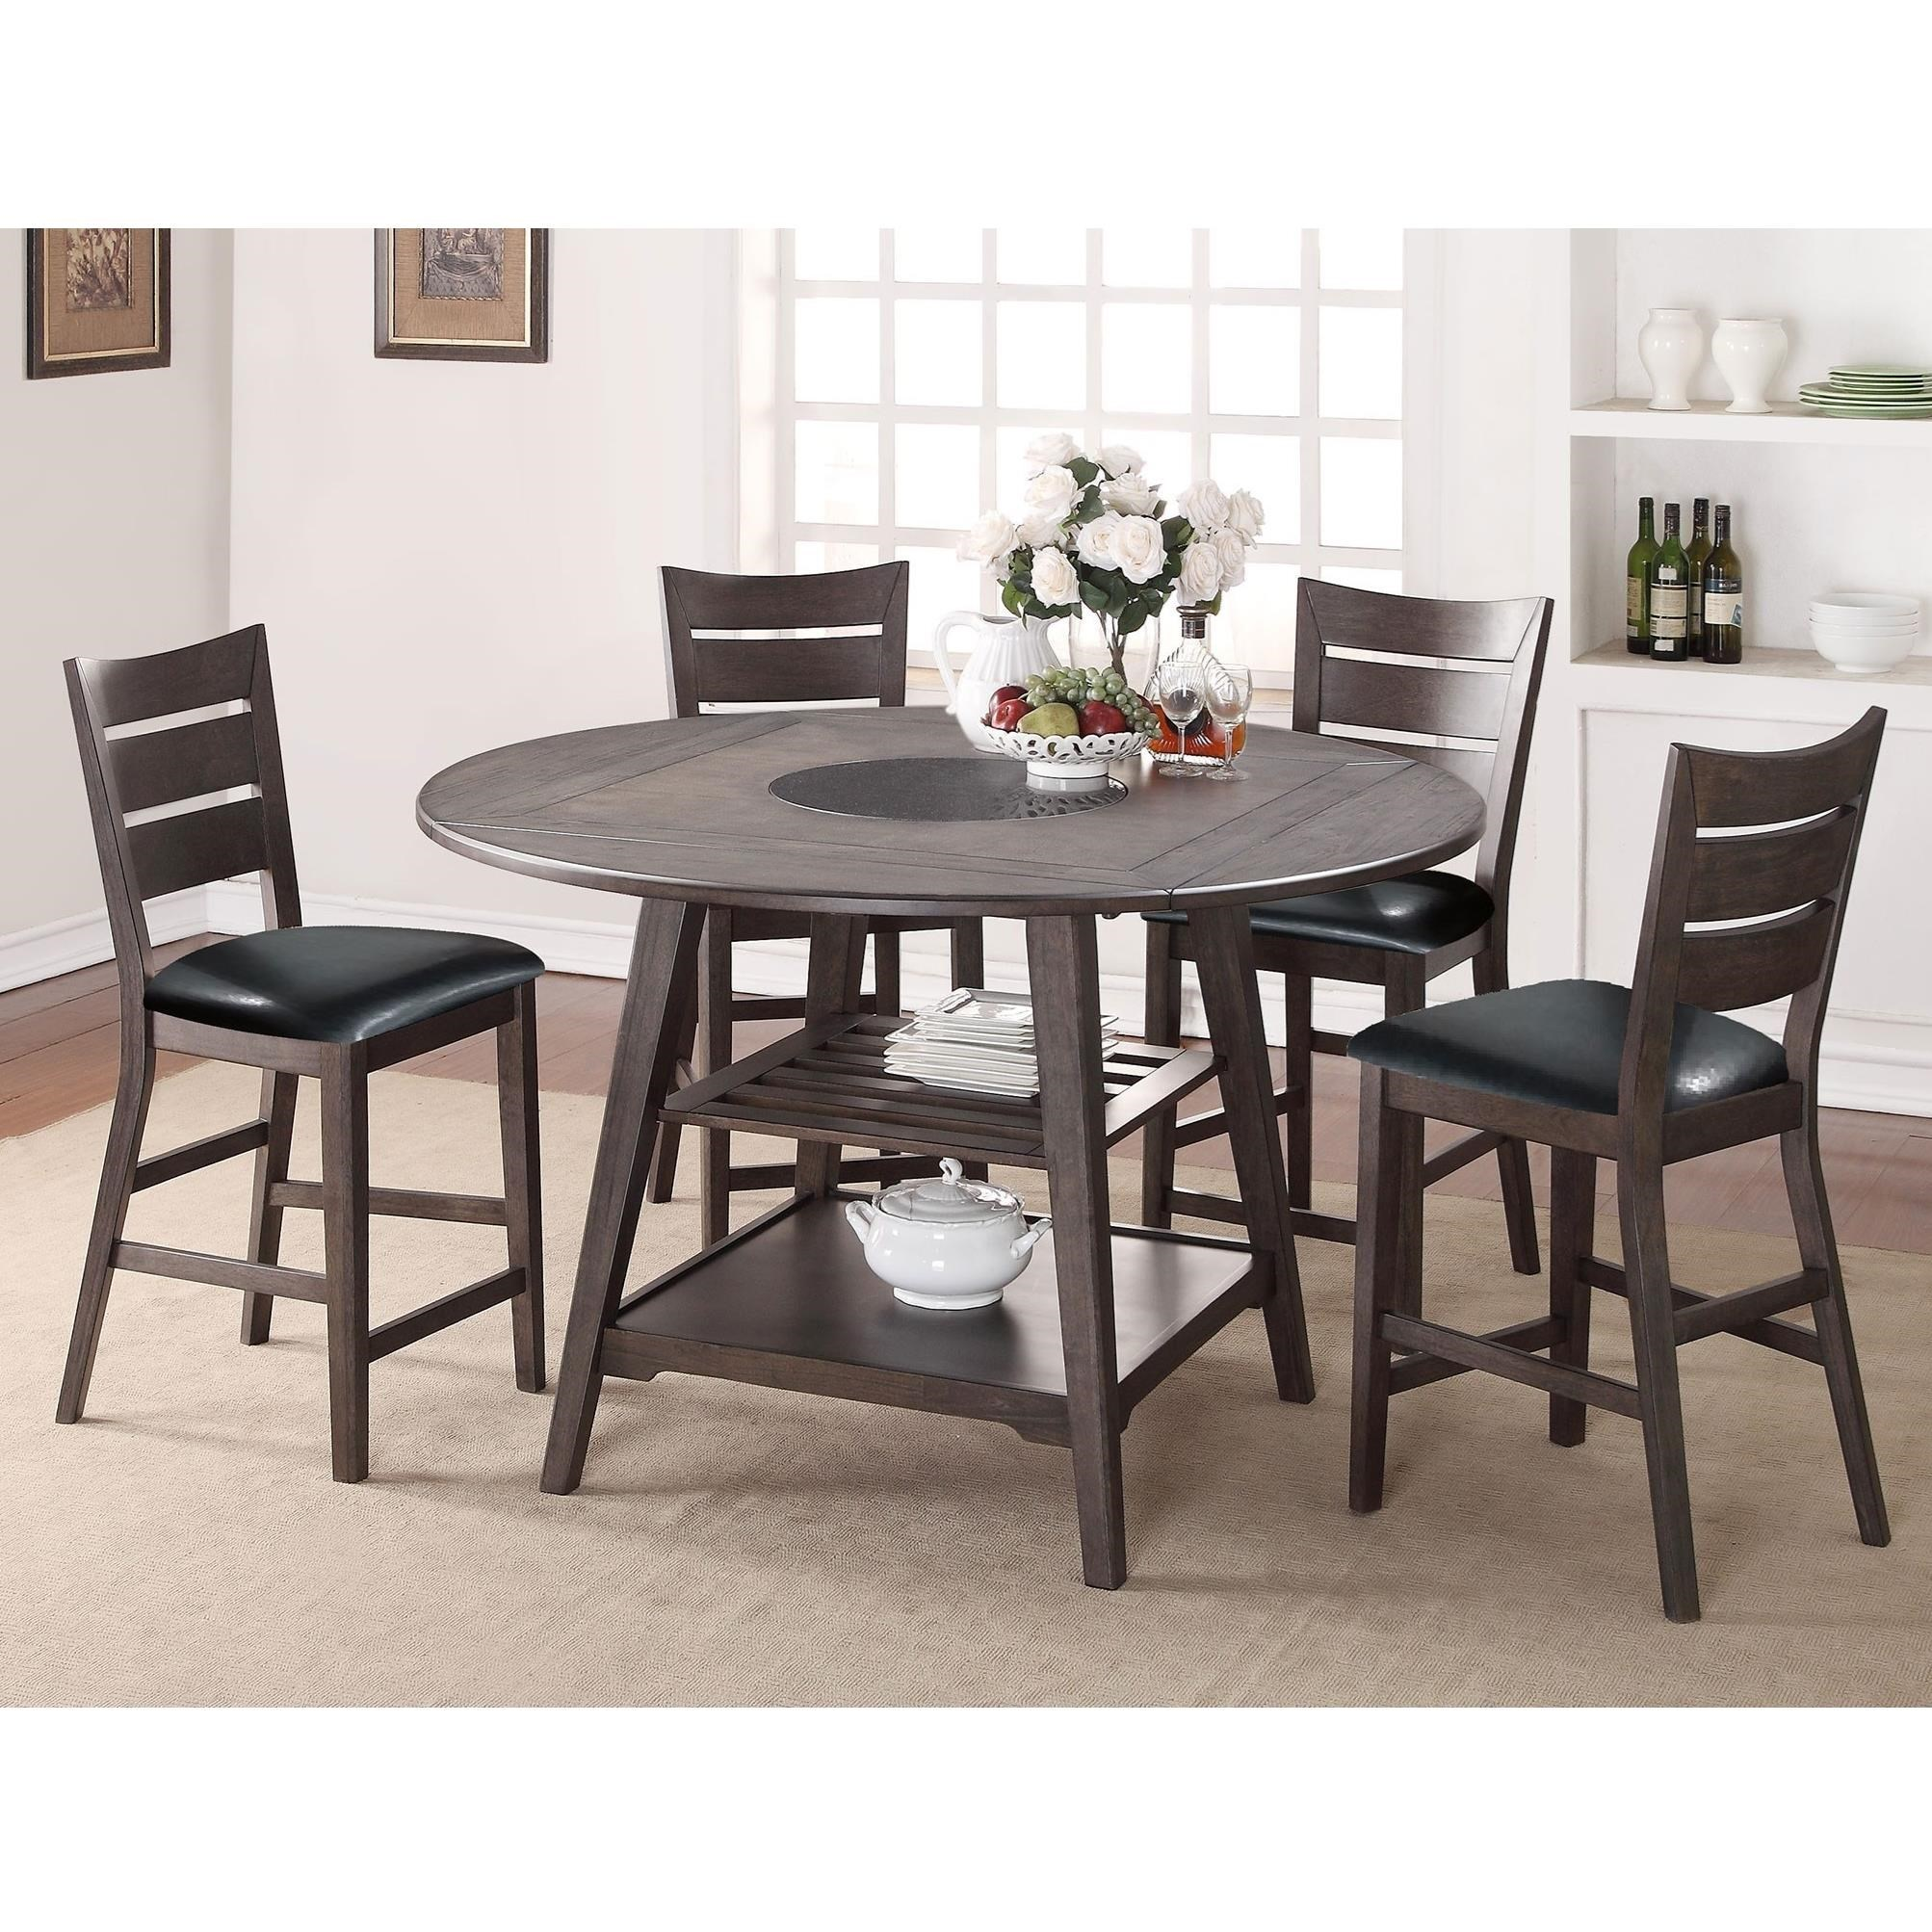 Parkside 5 Piece Counter Height Dining Set By Winners Only